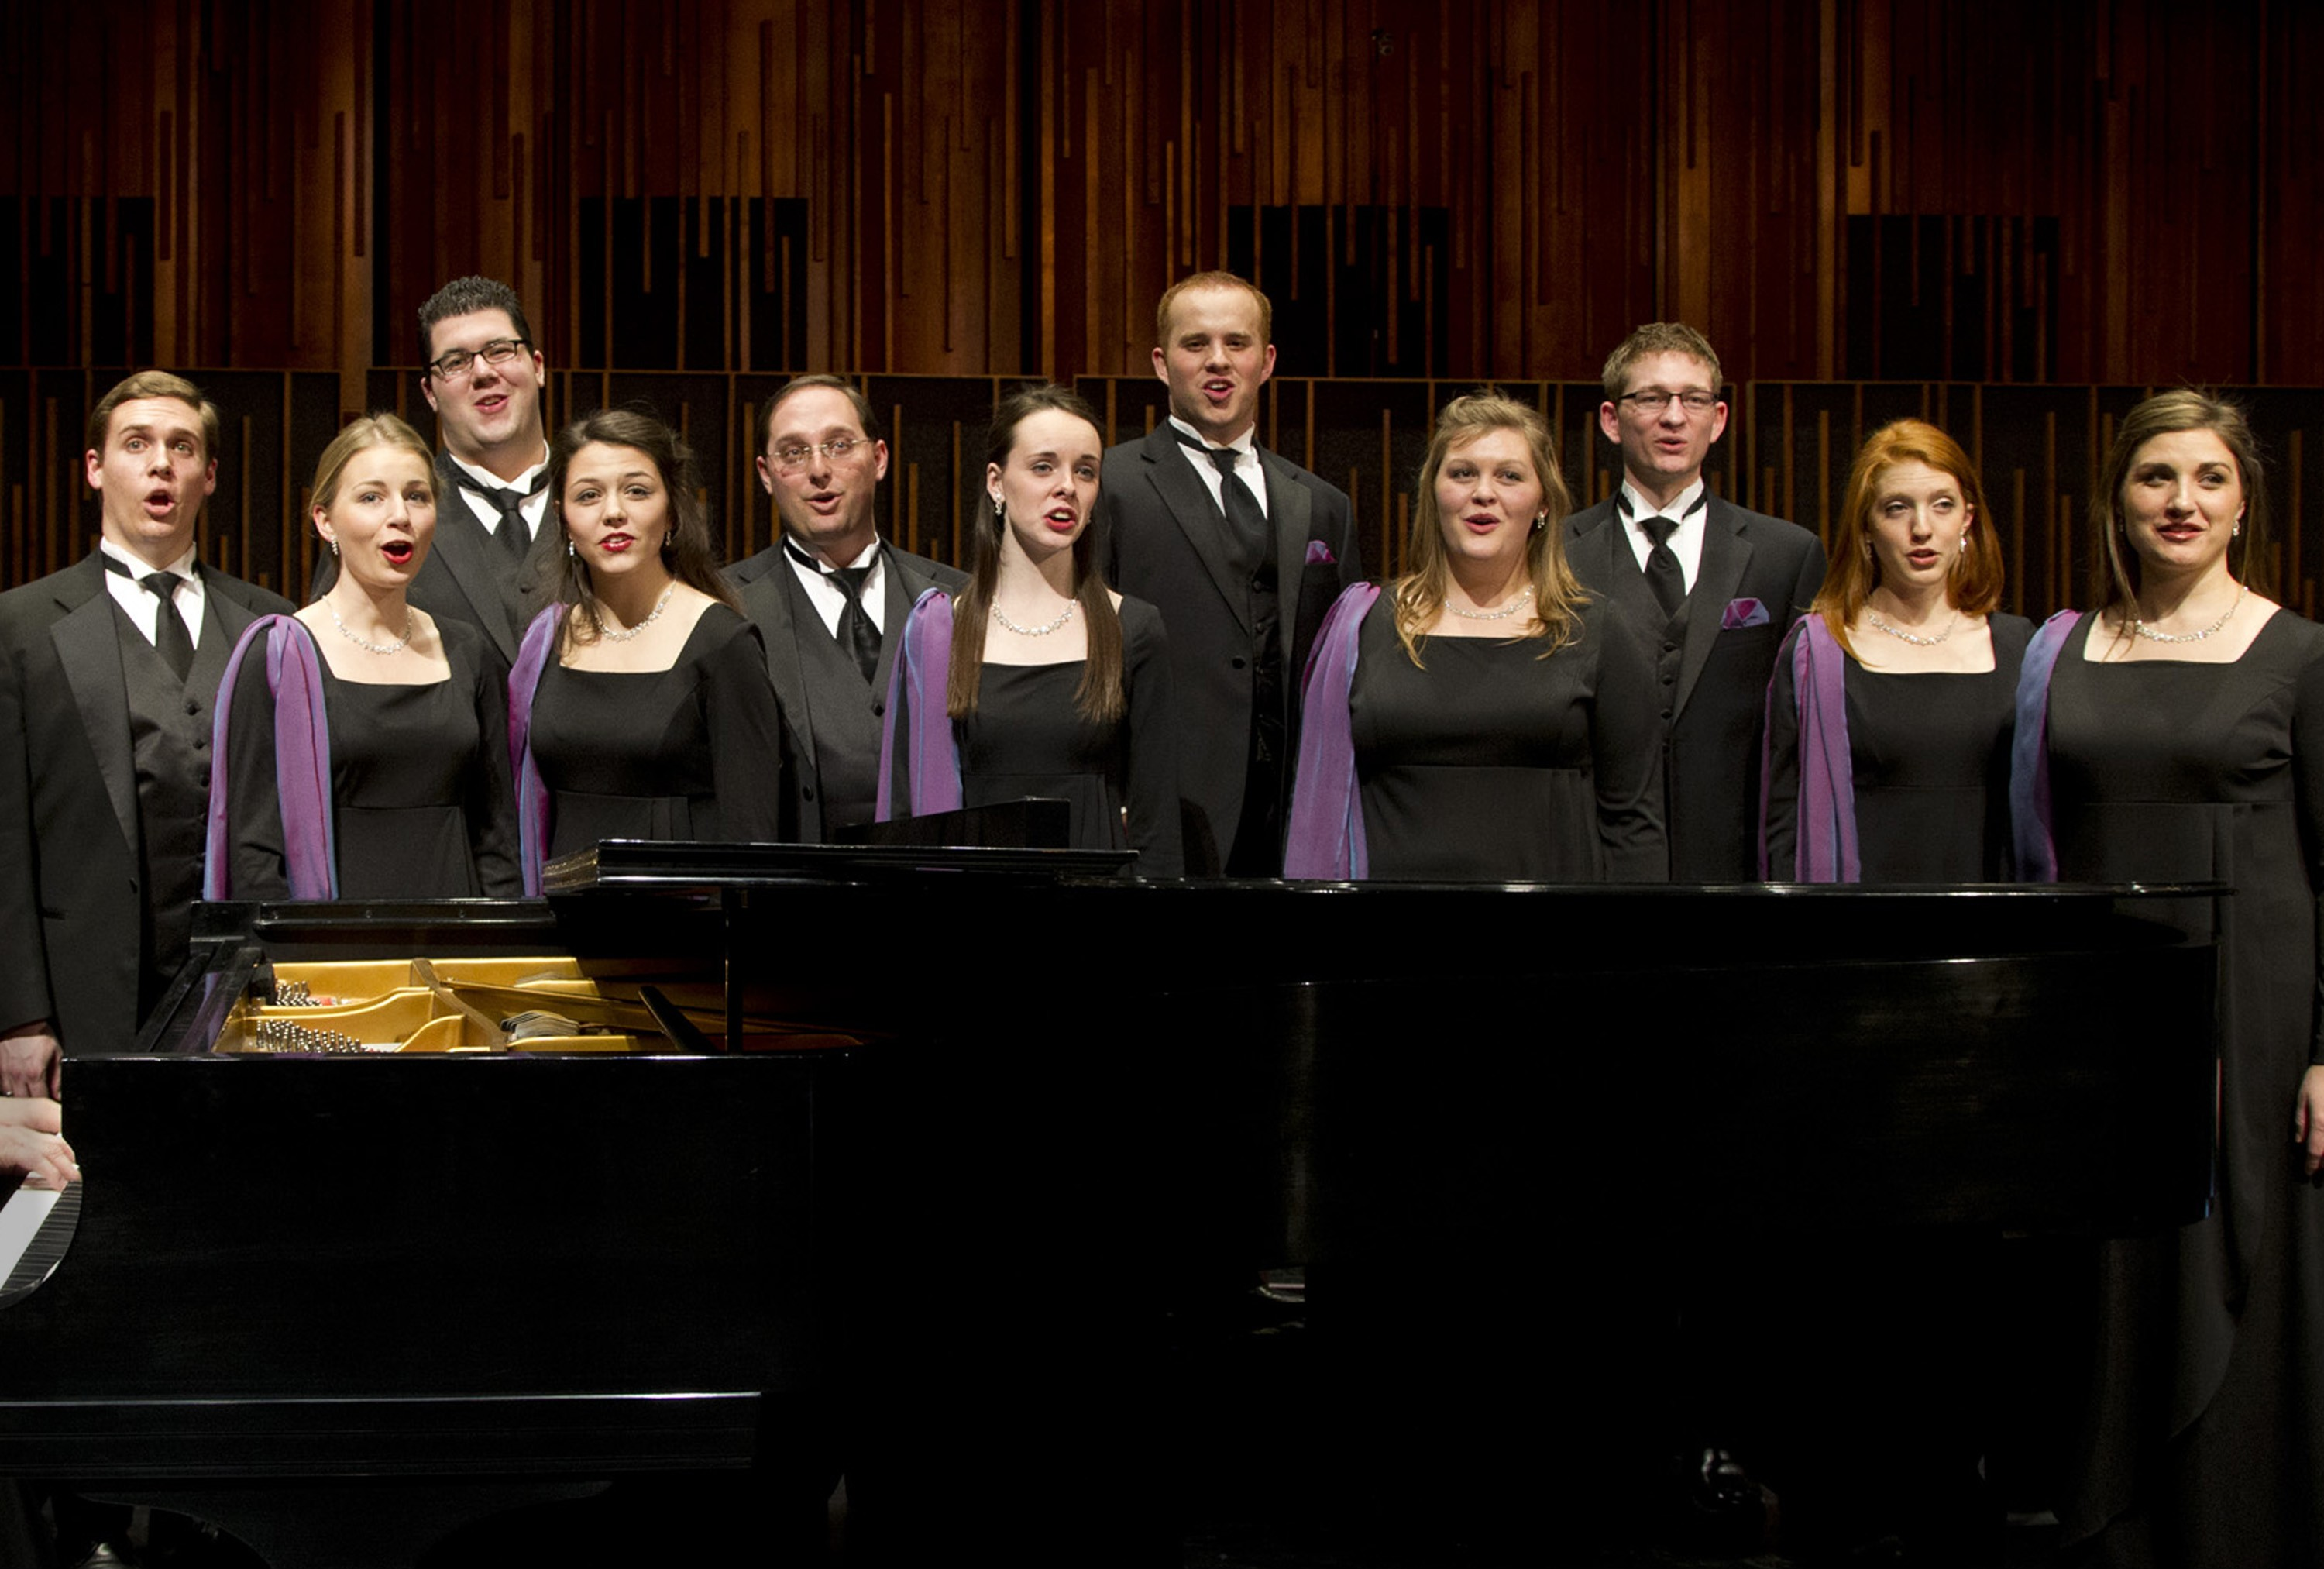 1202-05 159.CR2  Many members of the Brigham Young University Singers are fine instrumentalists in addition to being talented singers, and their abilities are often incorporated into the pieces performed by the choir.   Photography by Mark A. Philbrick  Copyright BYU Photo 2012 All Rights Reserved photo@byu.edu  (801)422-7322